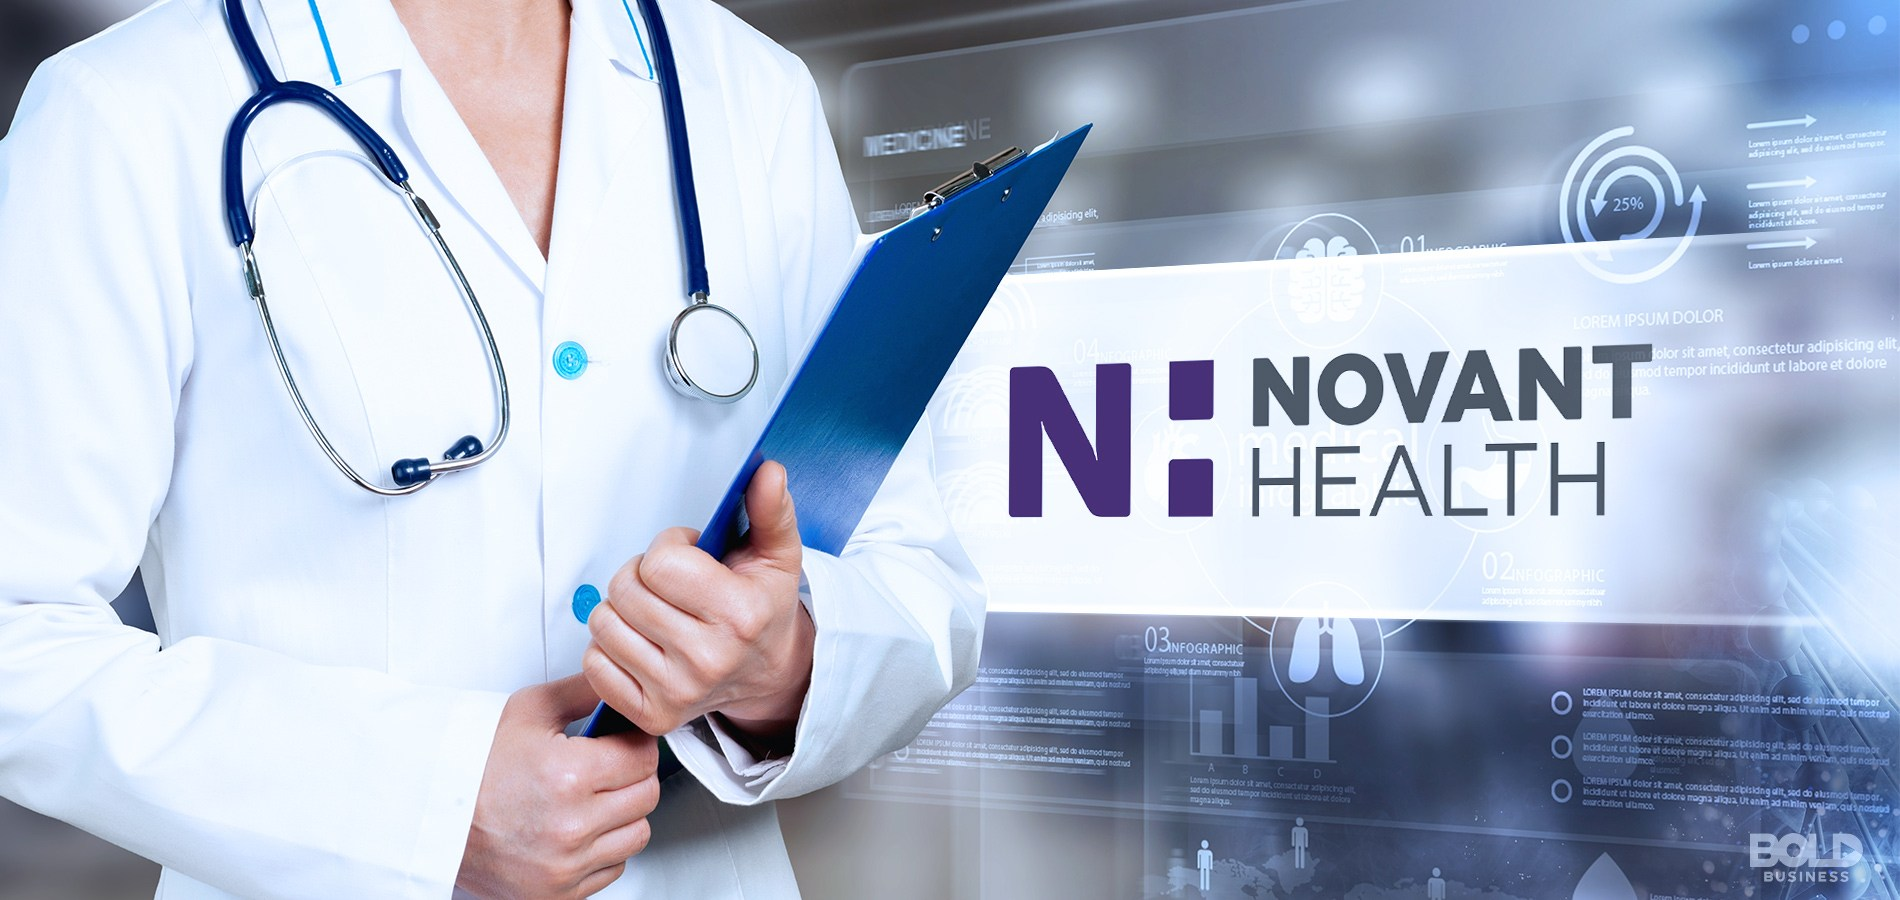 The Novant Health system serves its customers well via keen data management.